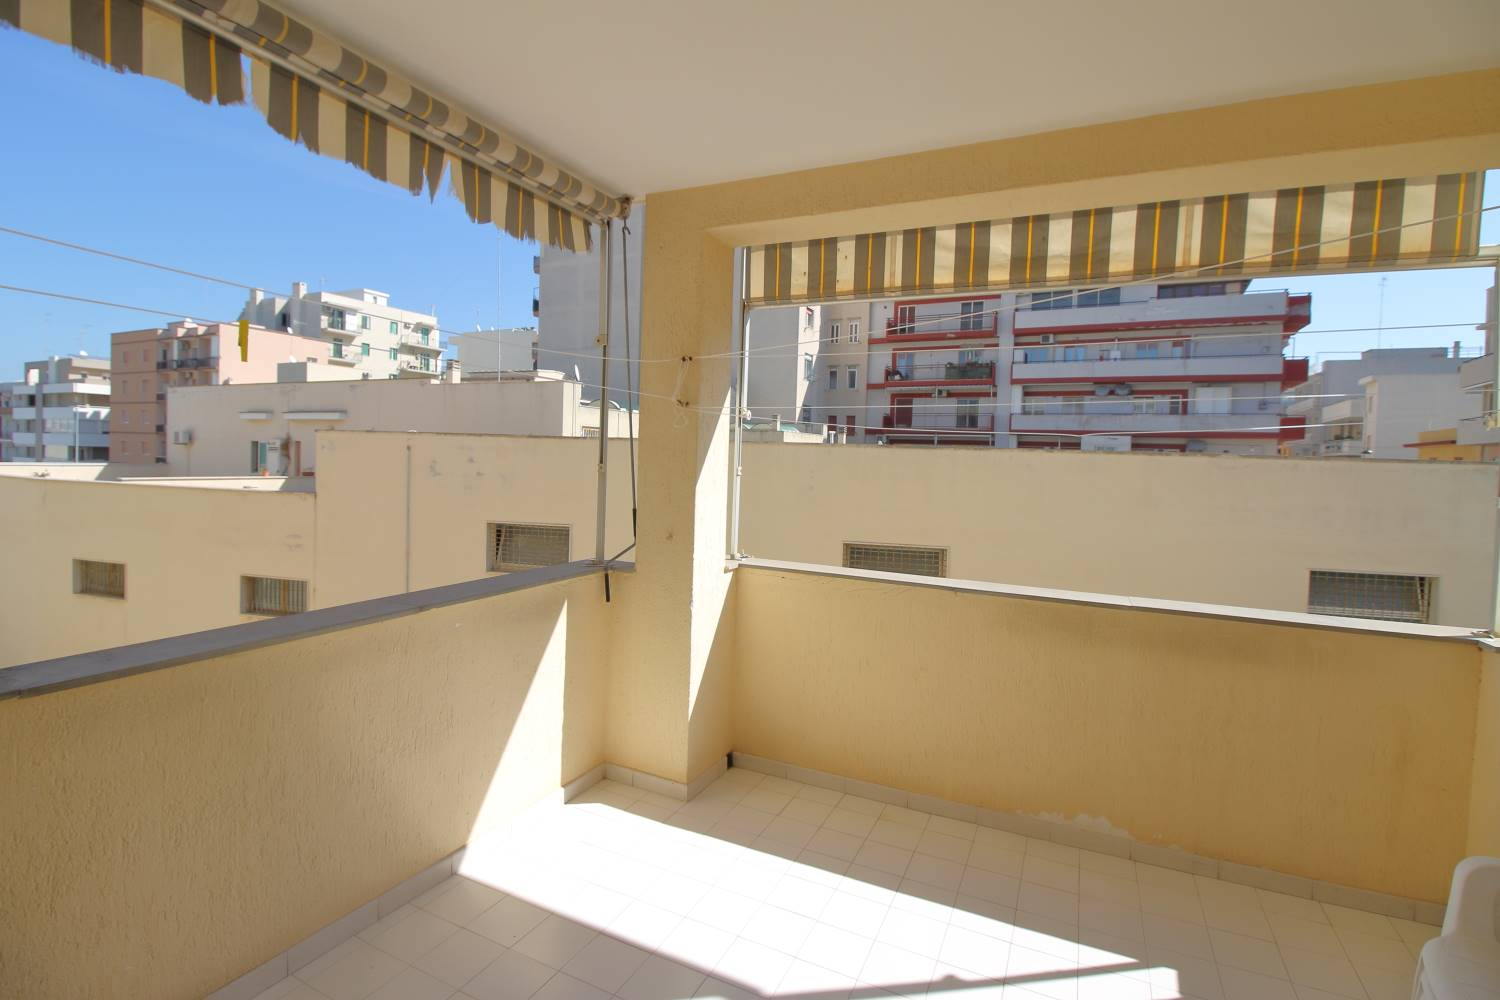 MONOPOLI, Apartment for sale of 120 Sq. mt., Good condition, Heating Individual heating system, Energetic class: G, Epi: 165 kwh/m2 year, placed at 1°, composed by: 4 Rooms, Separate kitchen, , 3